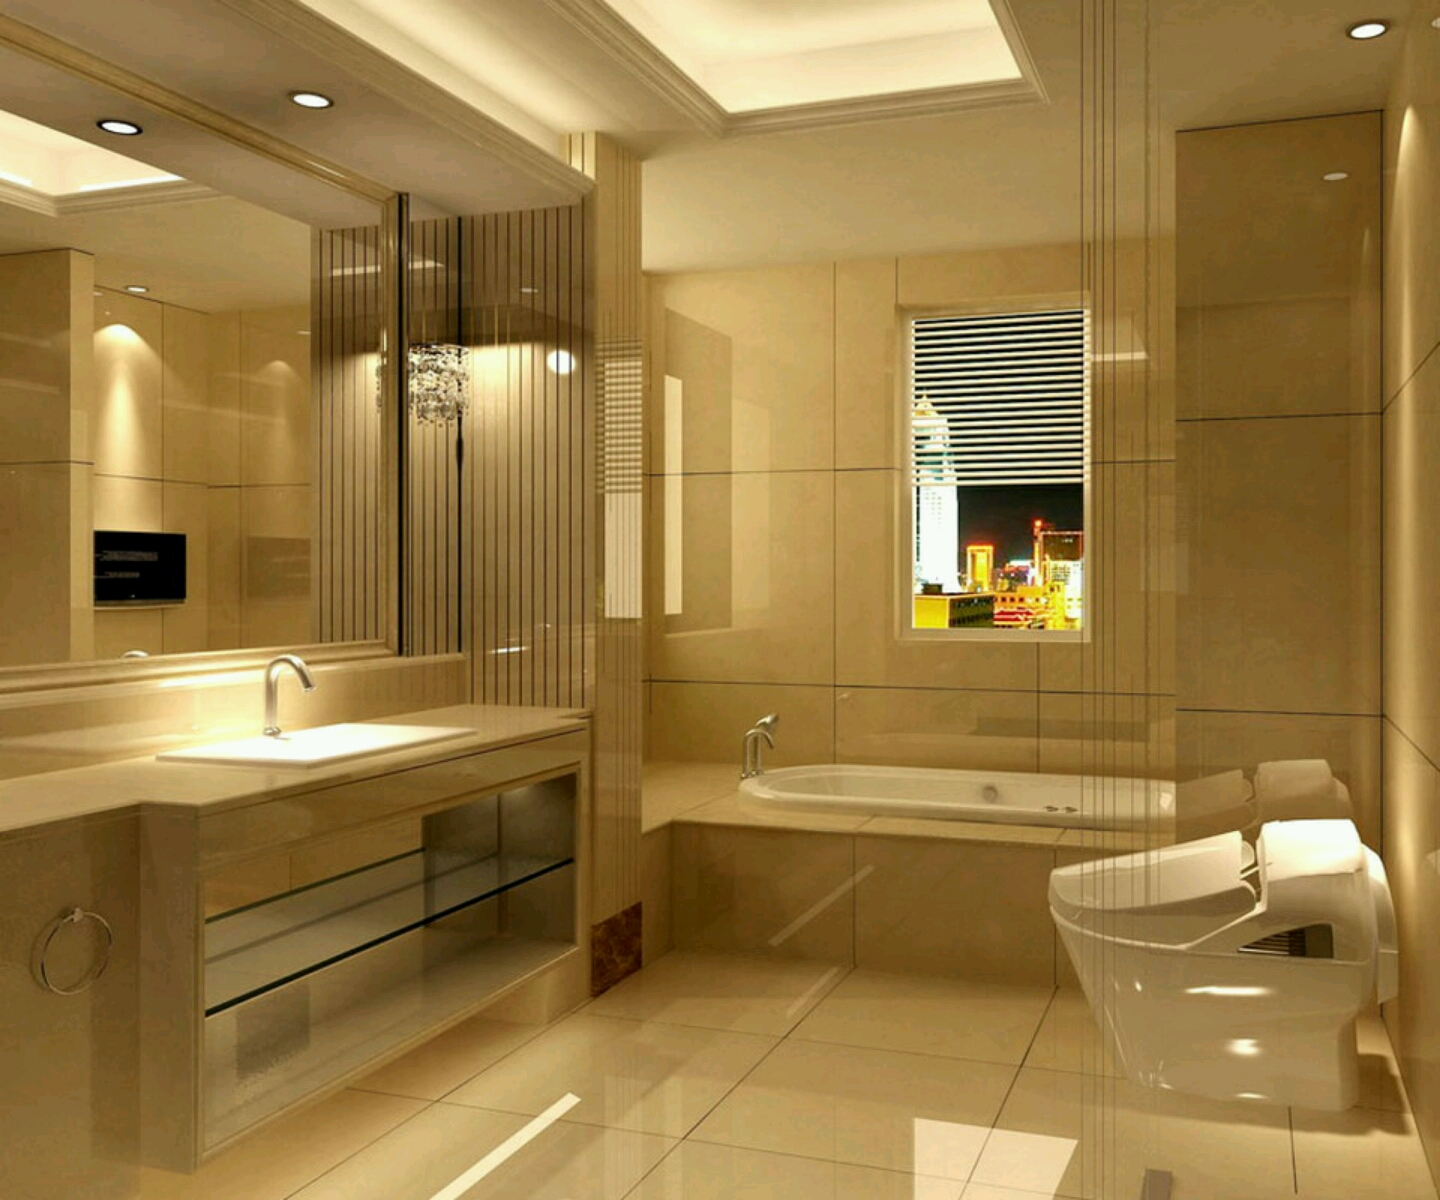 Modern bathrooms setting ideas furniture gallery for Bathroom modern design